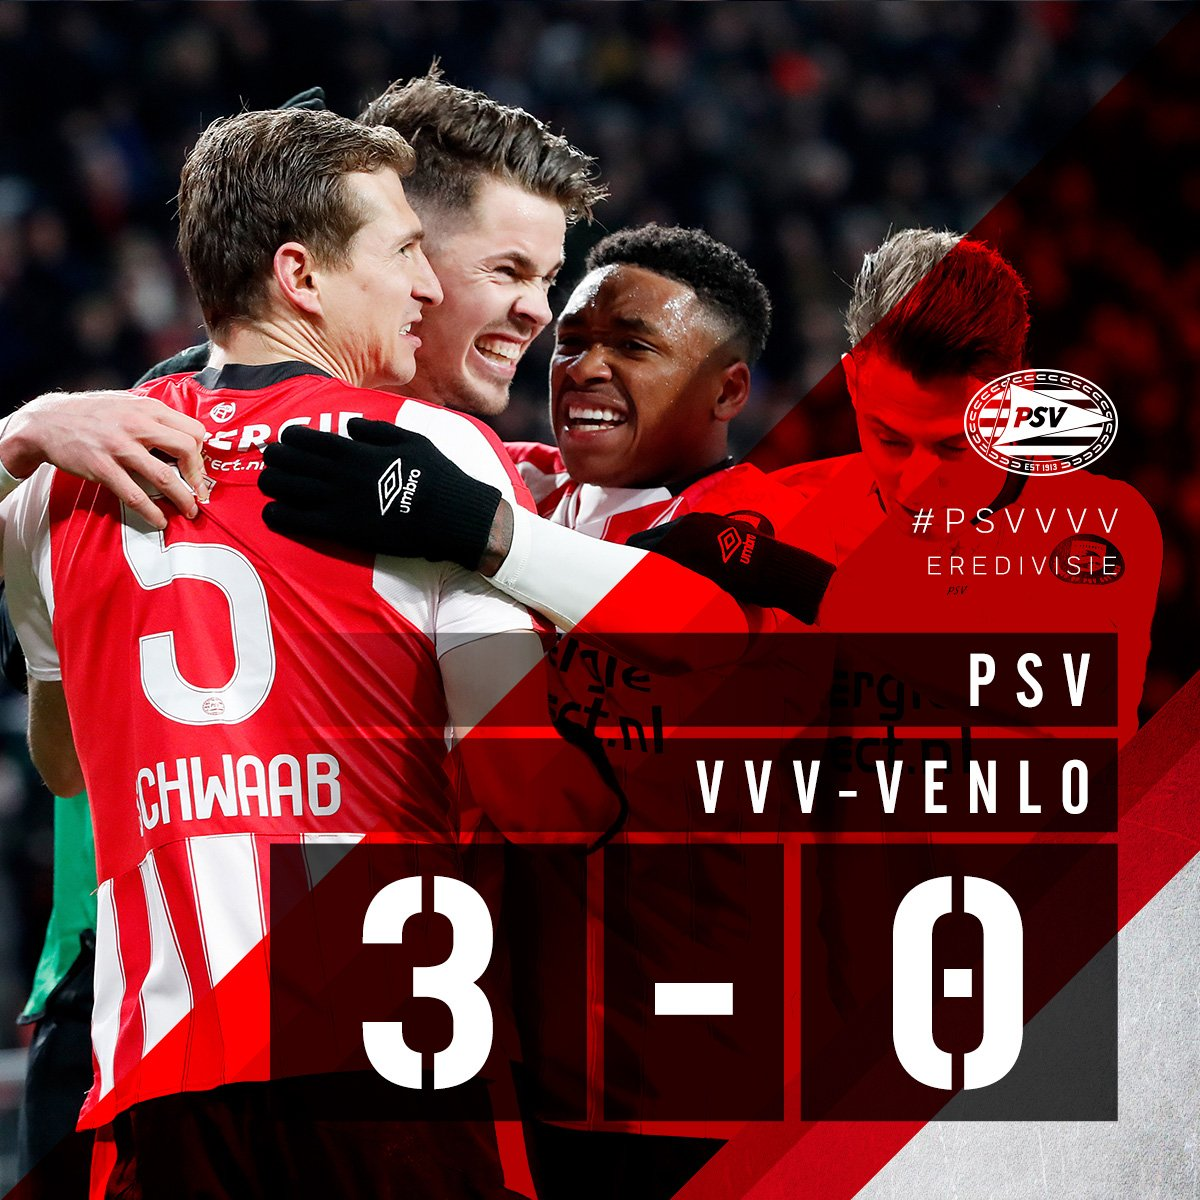 FULL-TIME #PSVVVV  1-0 Van Ginkel ((68)...